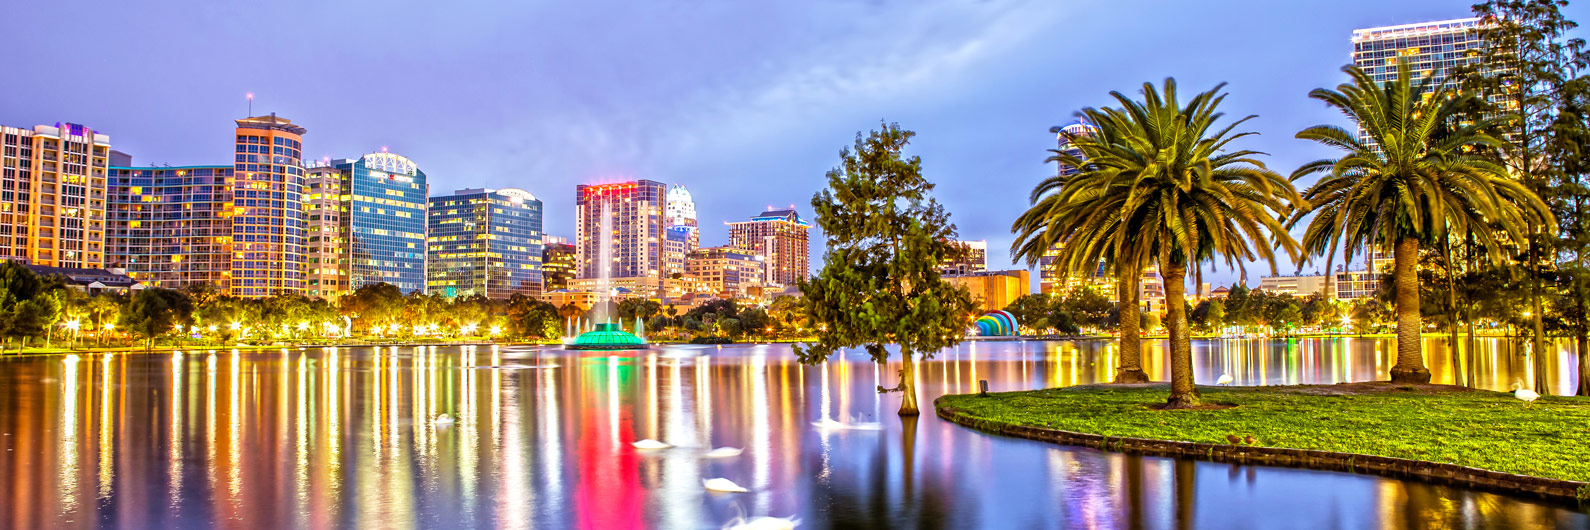 buffalo to orlando flight deals